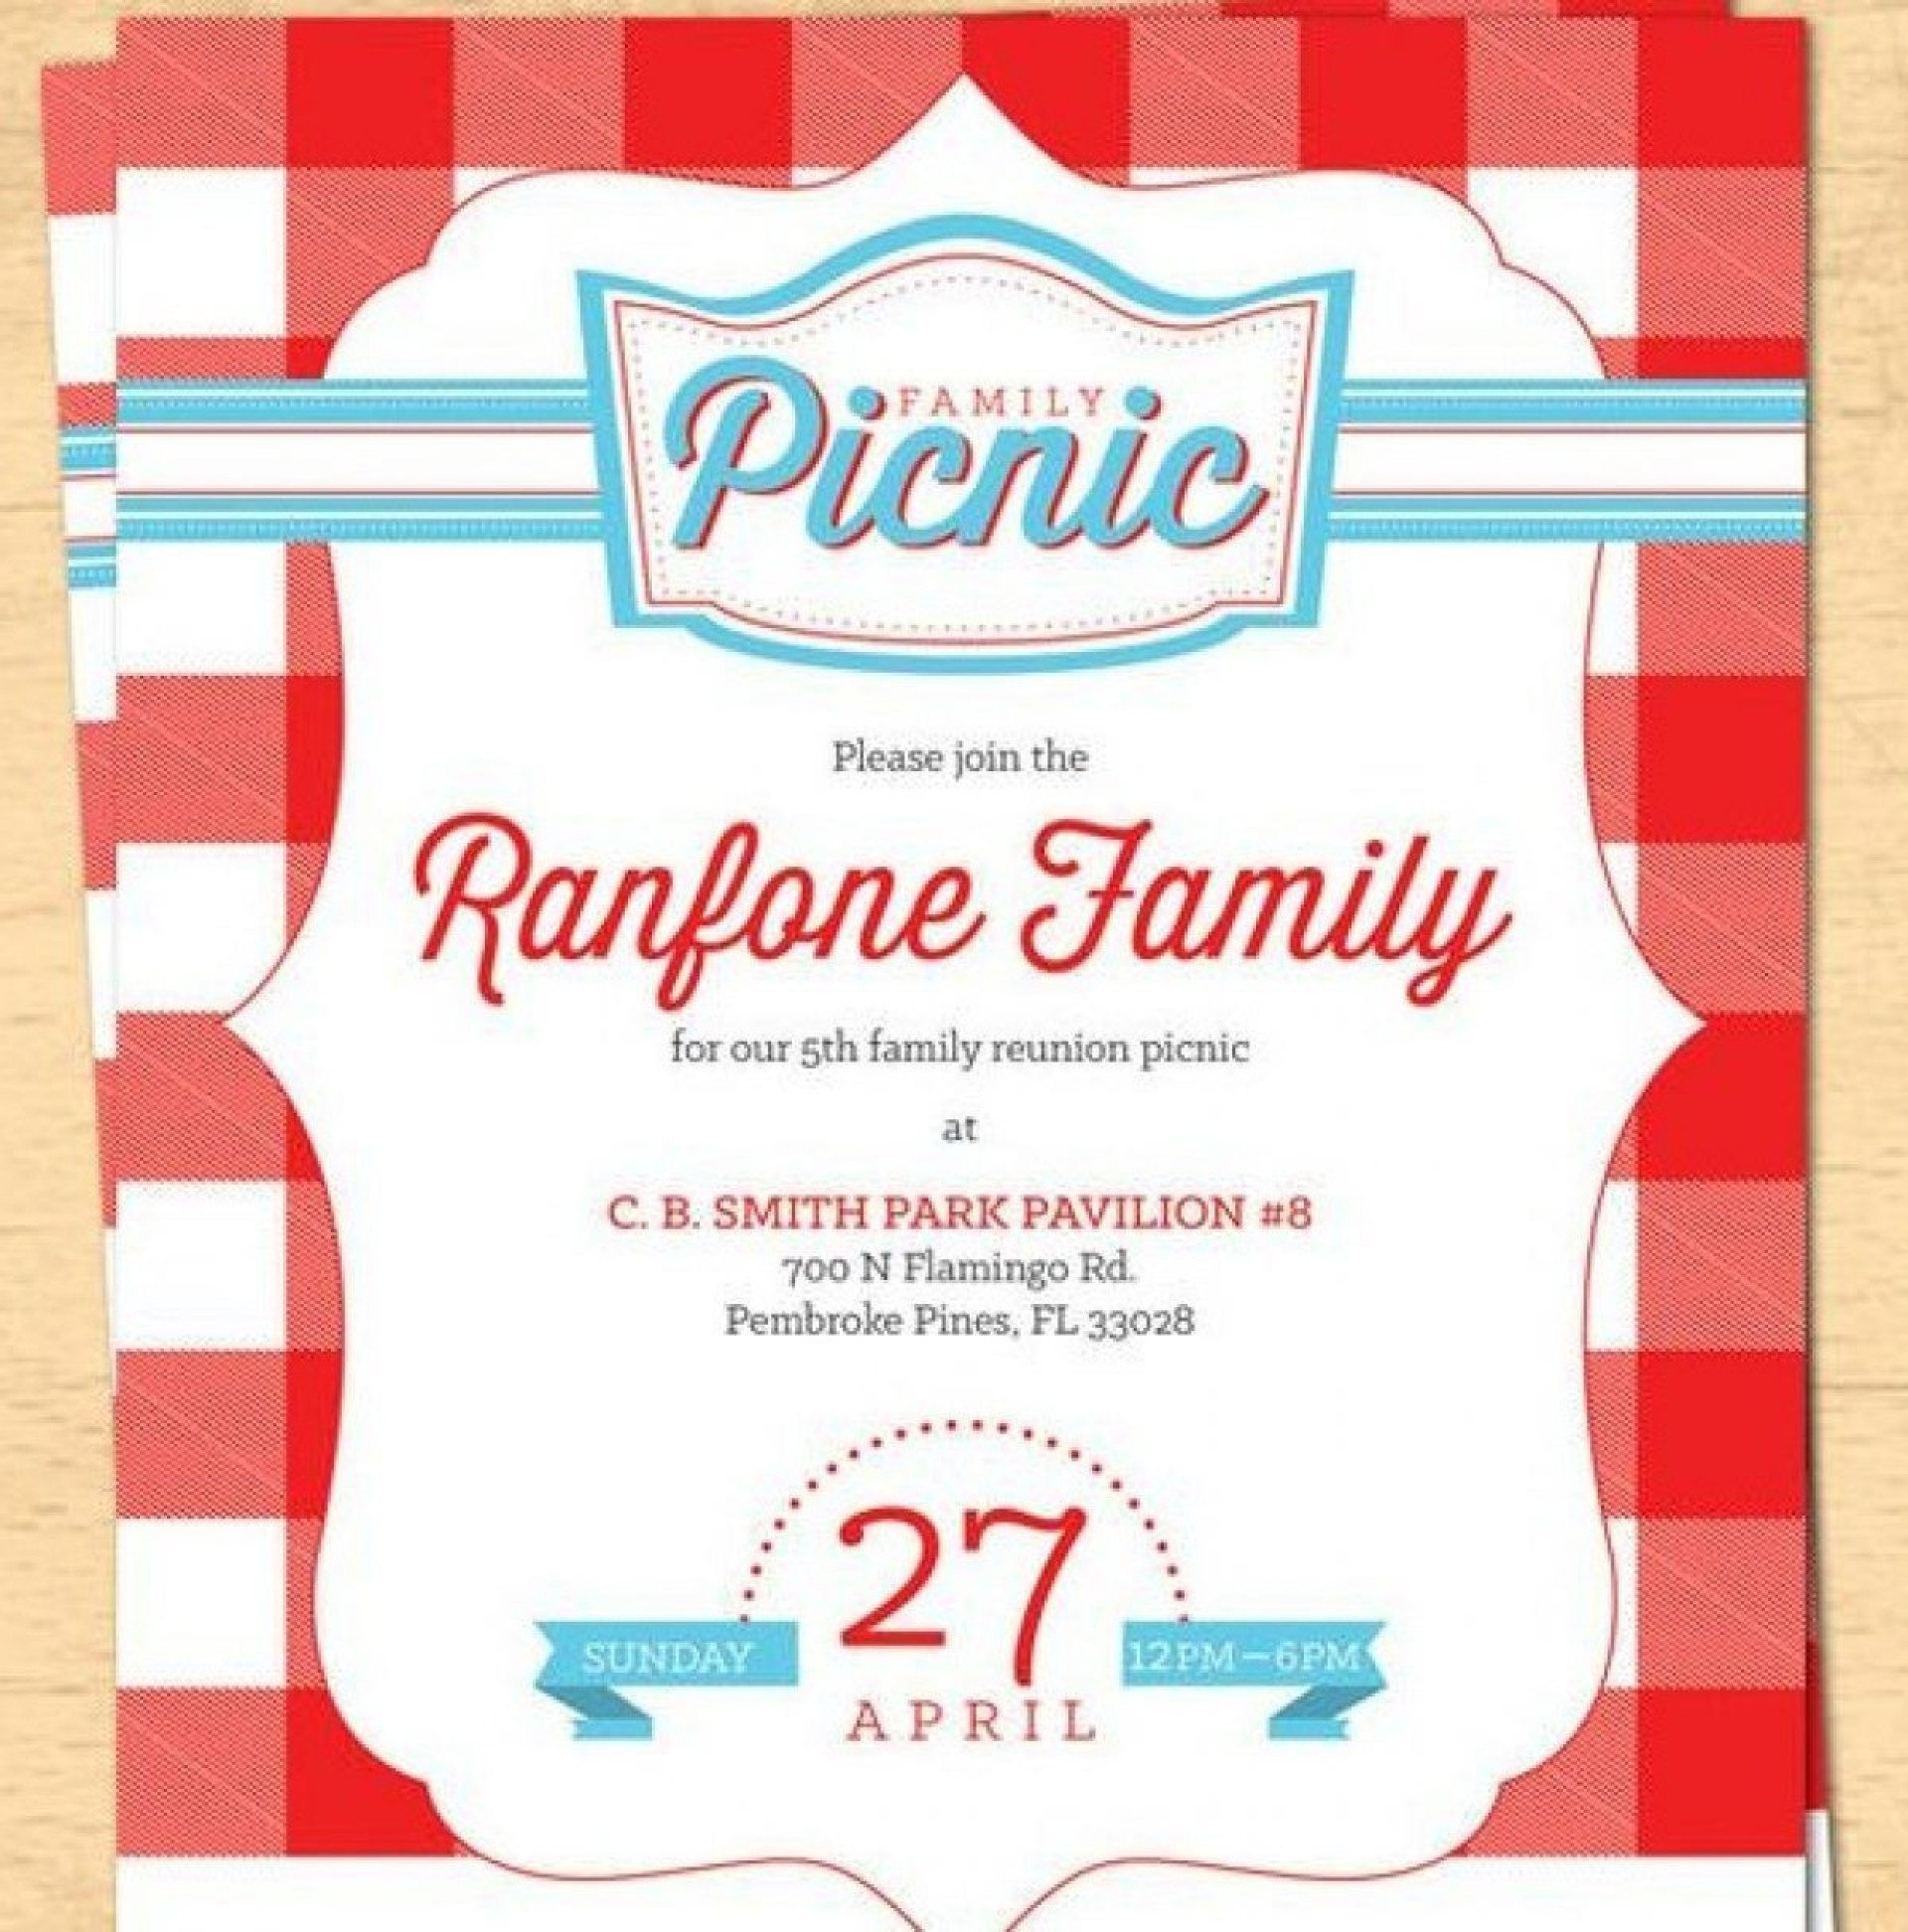 004 Stupendou Free Downloadable Family Reunion Flyer Template Highest Quality 1920